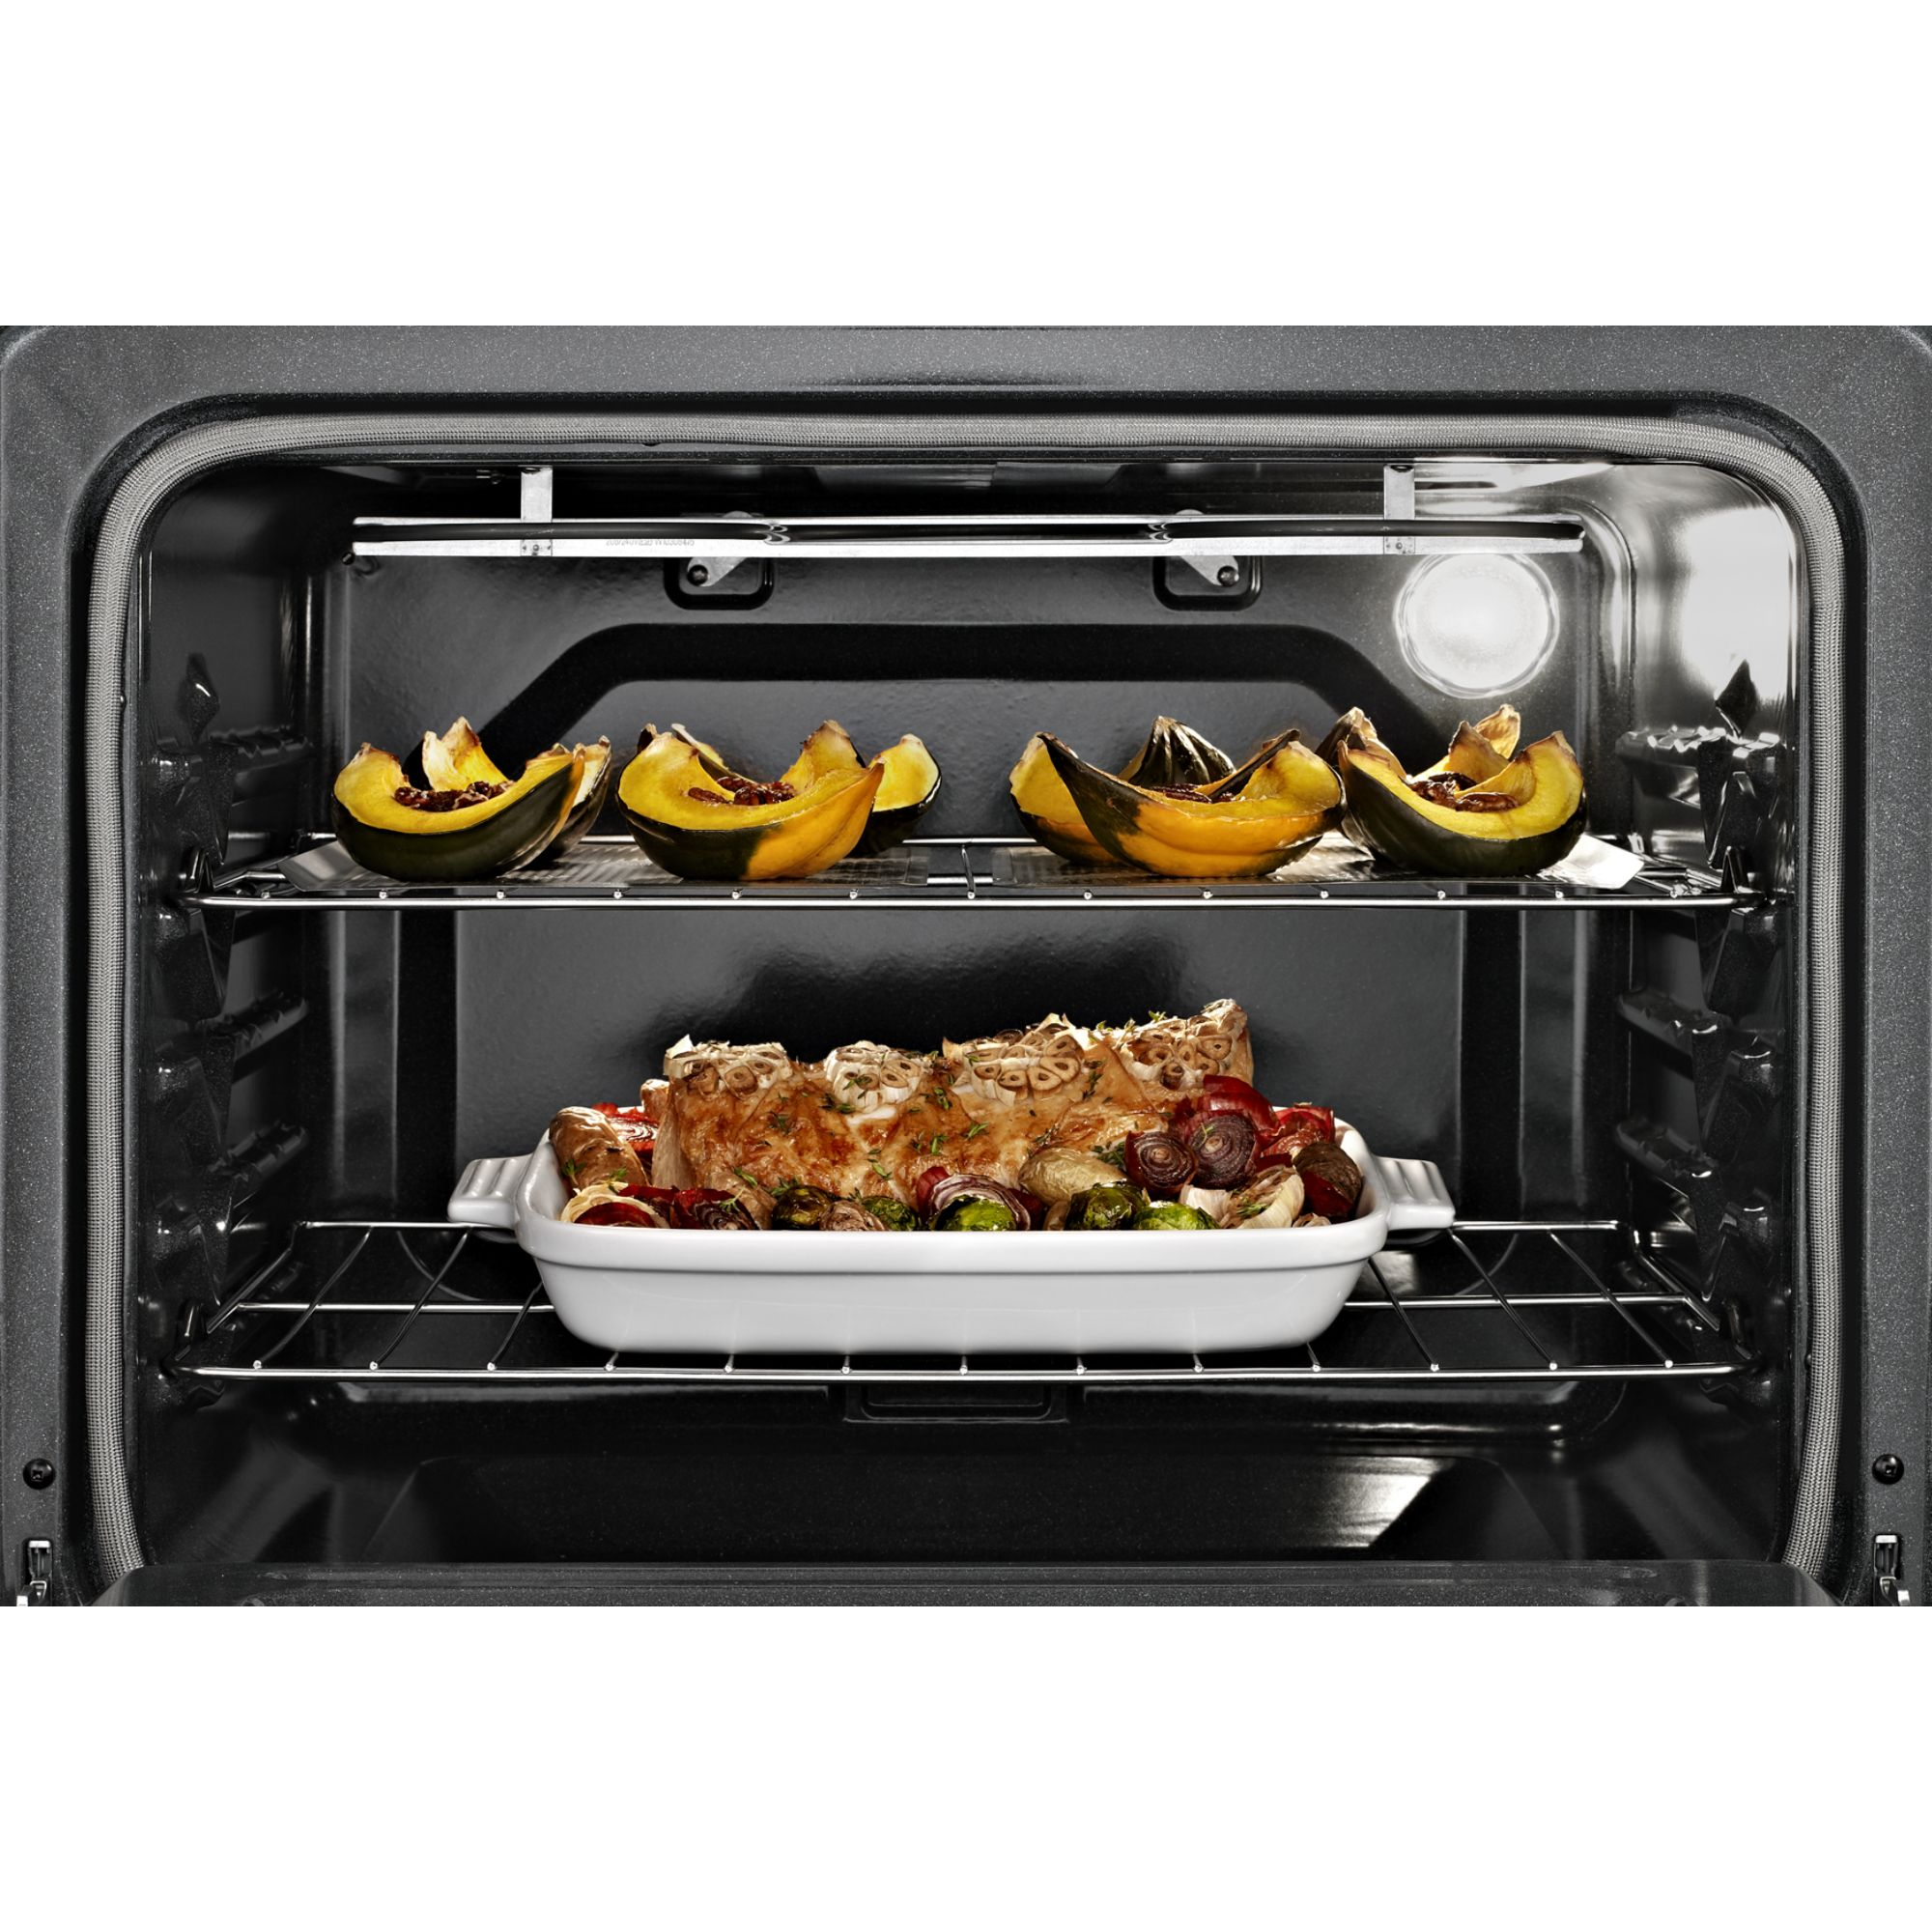 """Whirlpool 30"""" Freestanding Electric Range w/ Dual Radiant Element - Stainless Steel"""